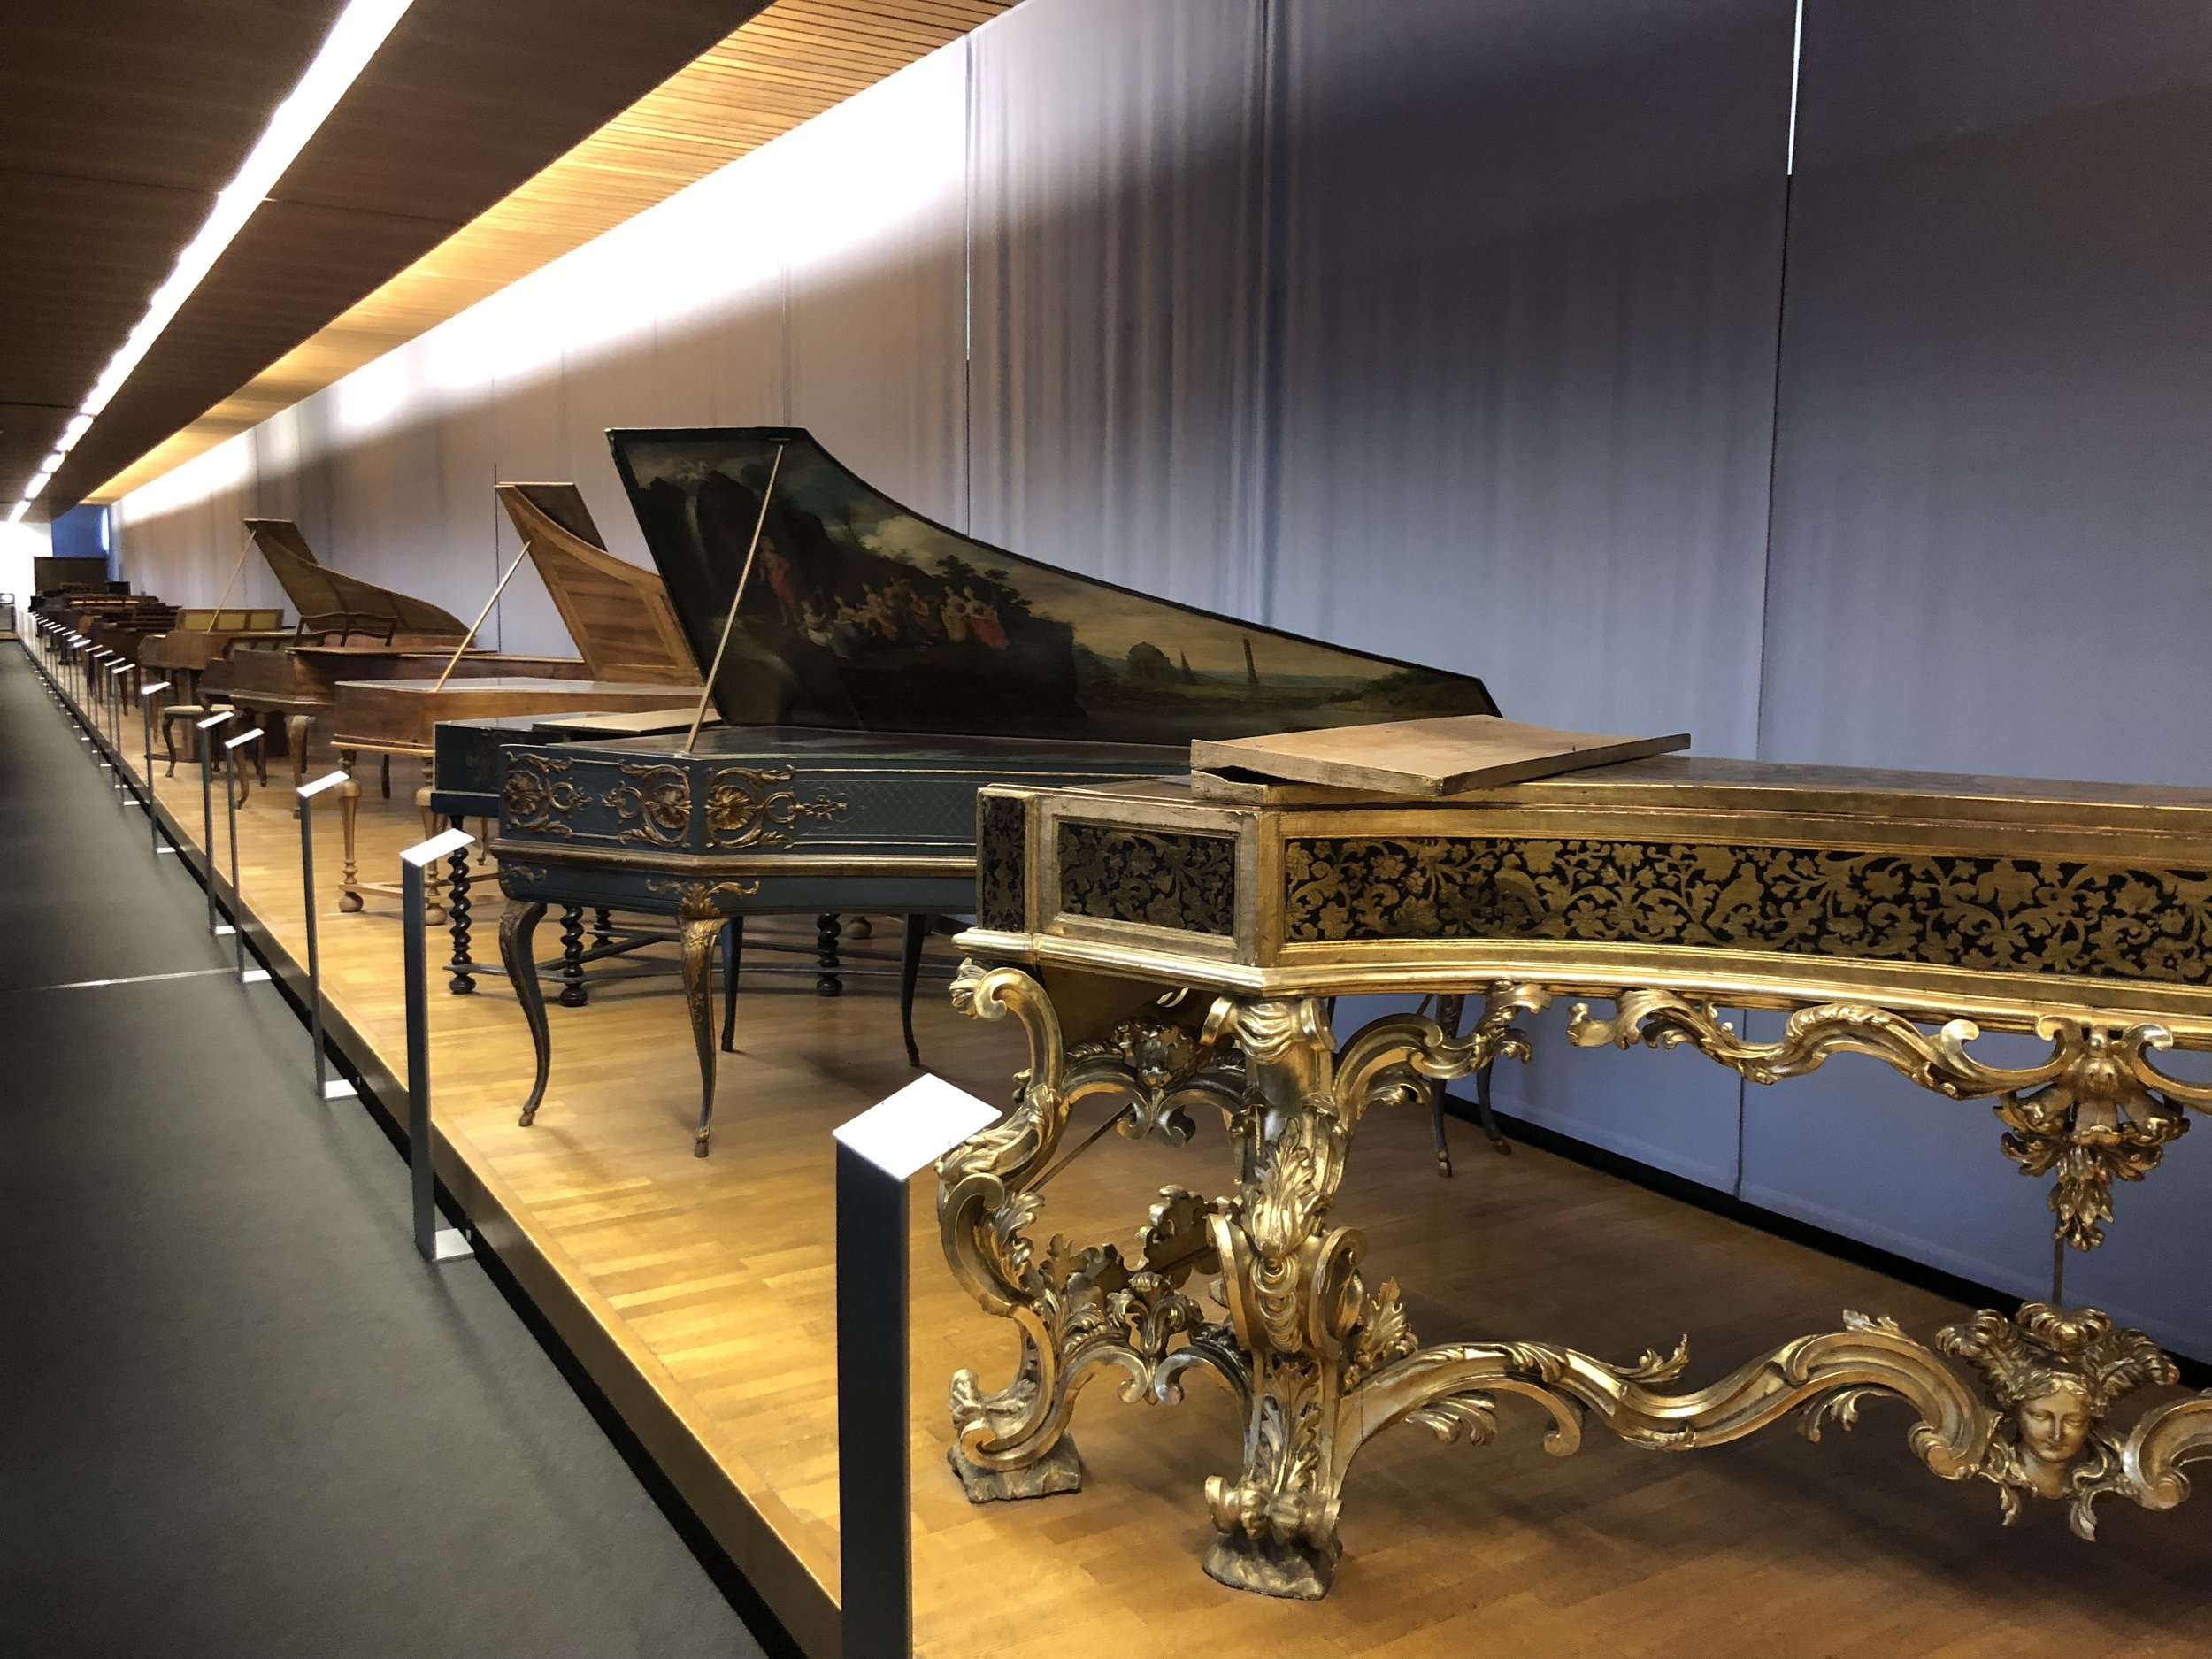 The history of the harpsichord to the modern piano in the German National Museum.